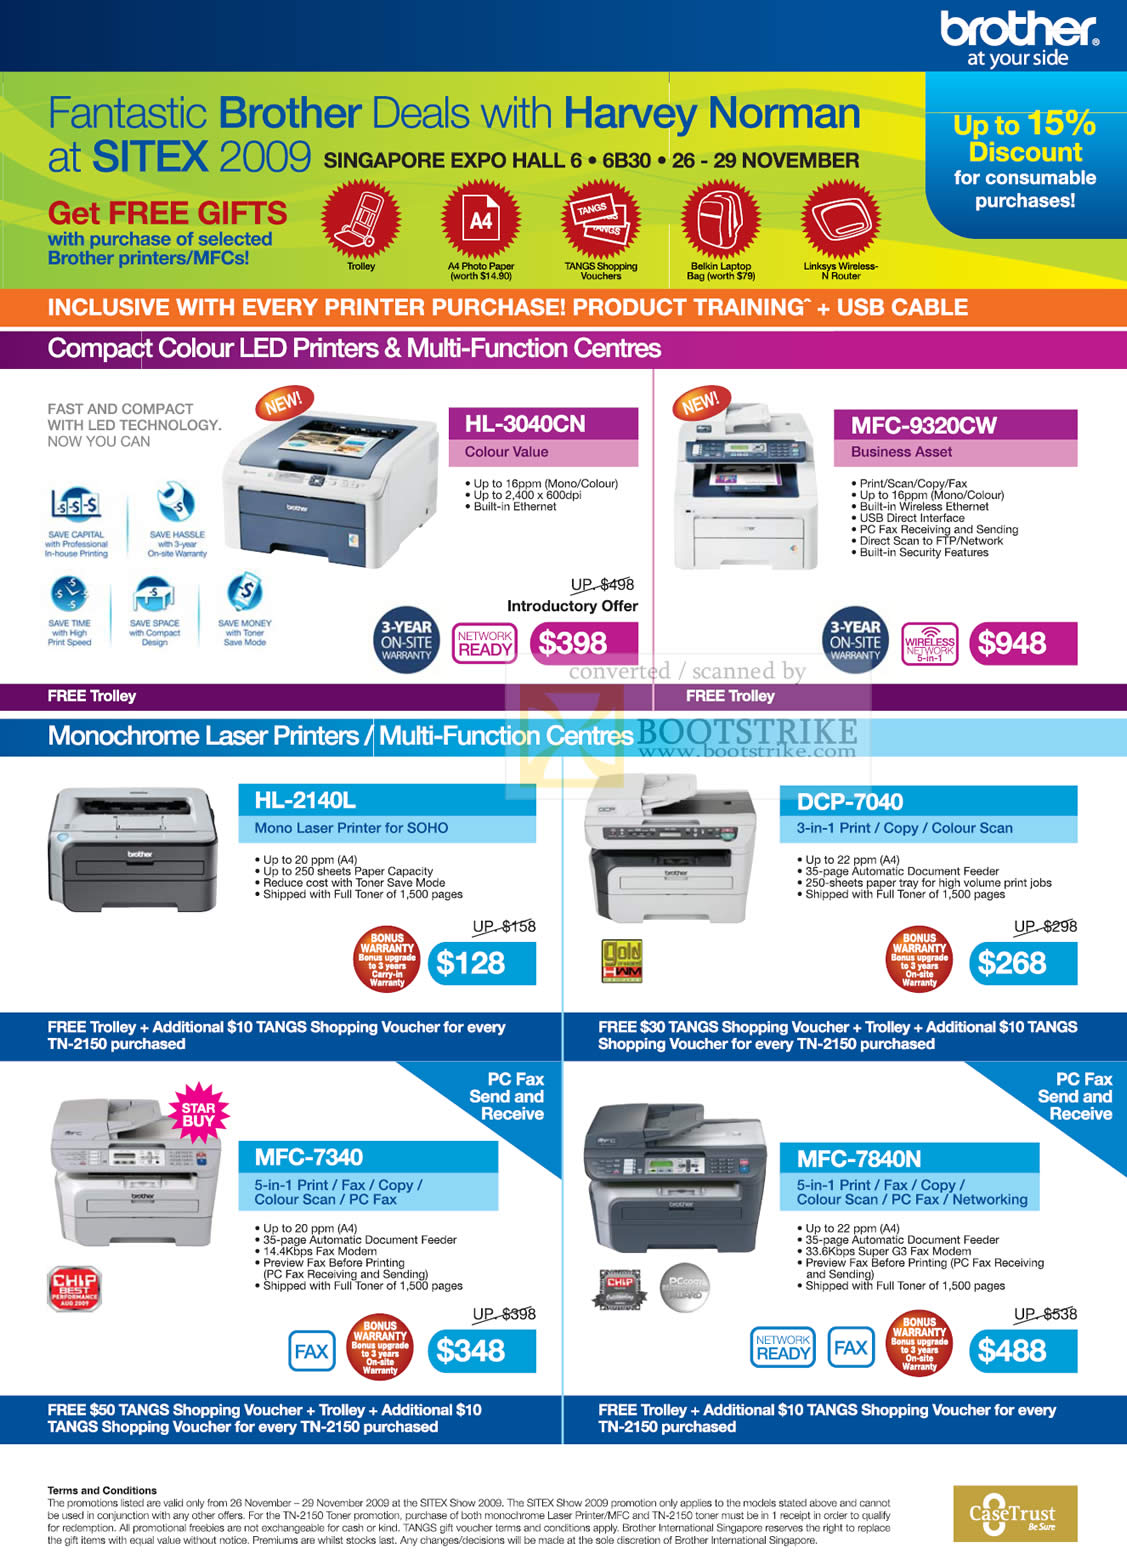 Sitex 2009 price list image brochure of Brother Colour LED Printers Multi Function Laser Fax Scan Copy